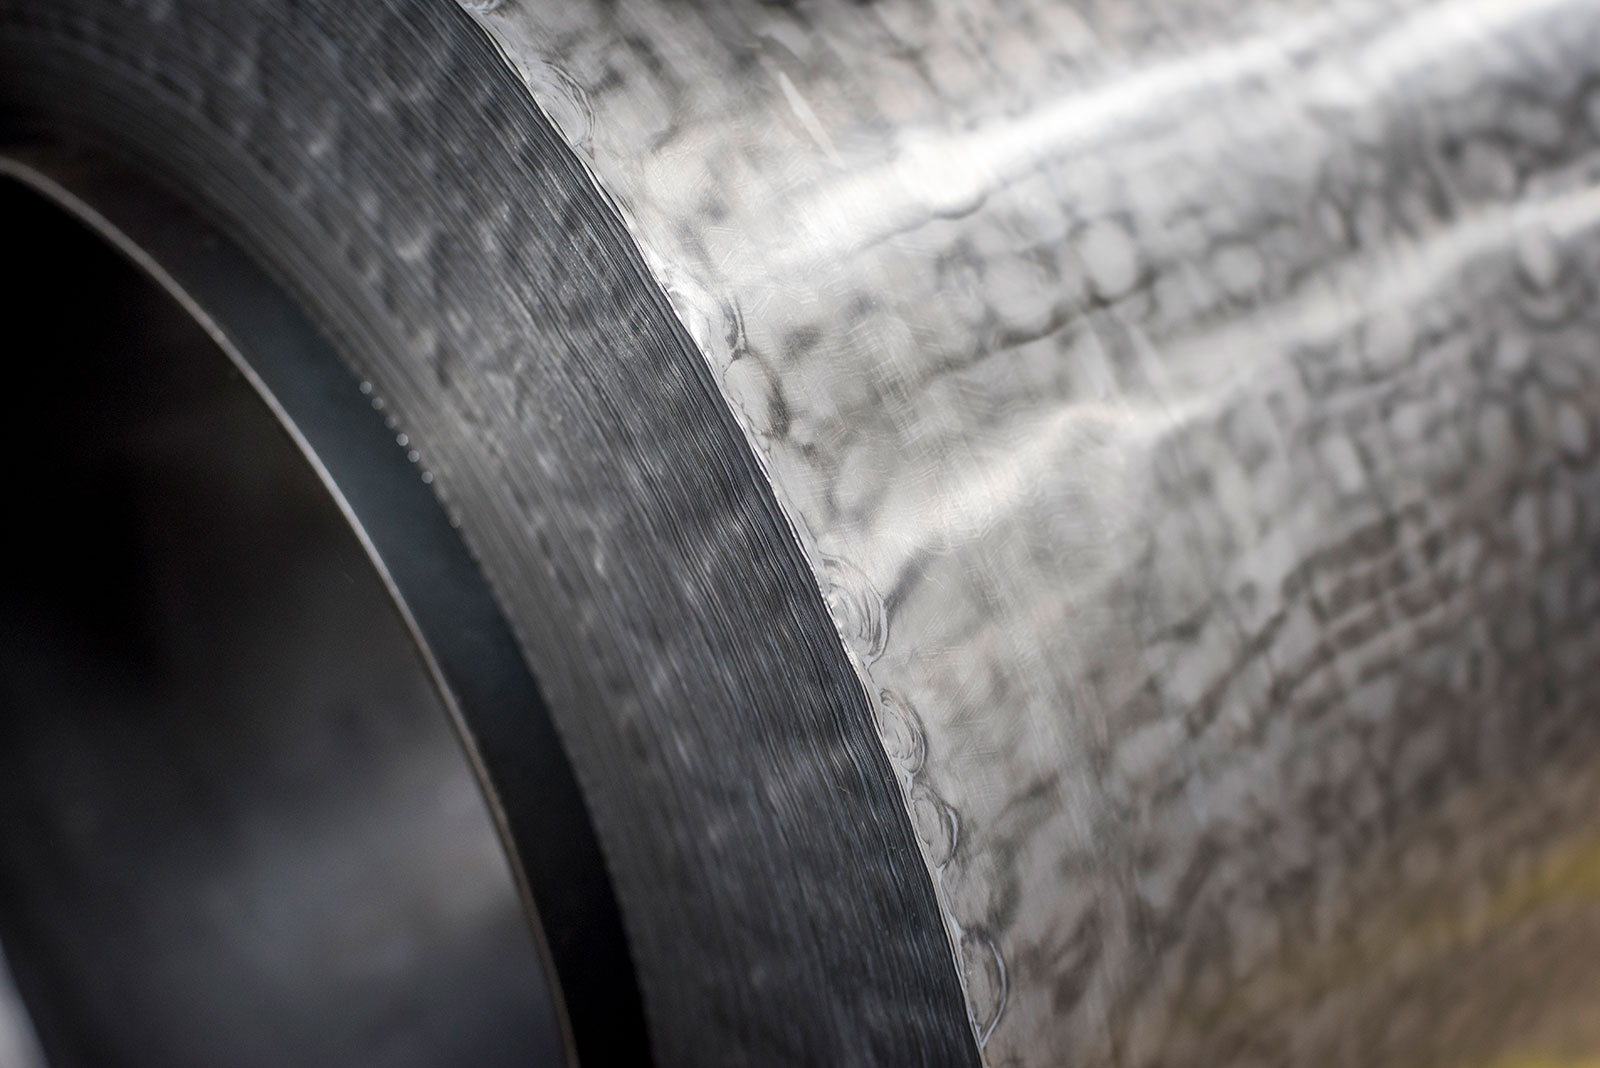 Grain Oriented Electrical Steel (GOES)